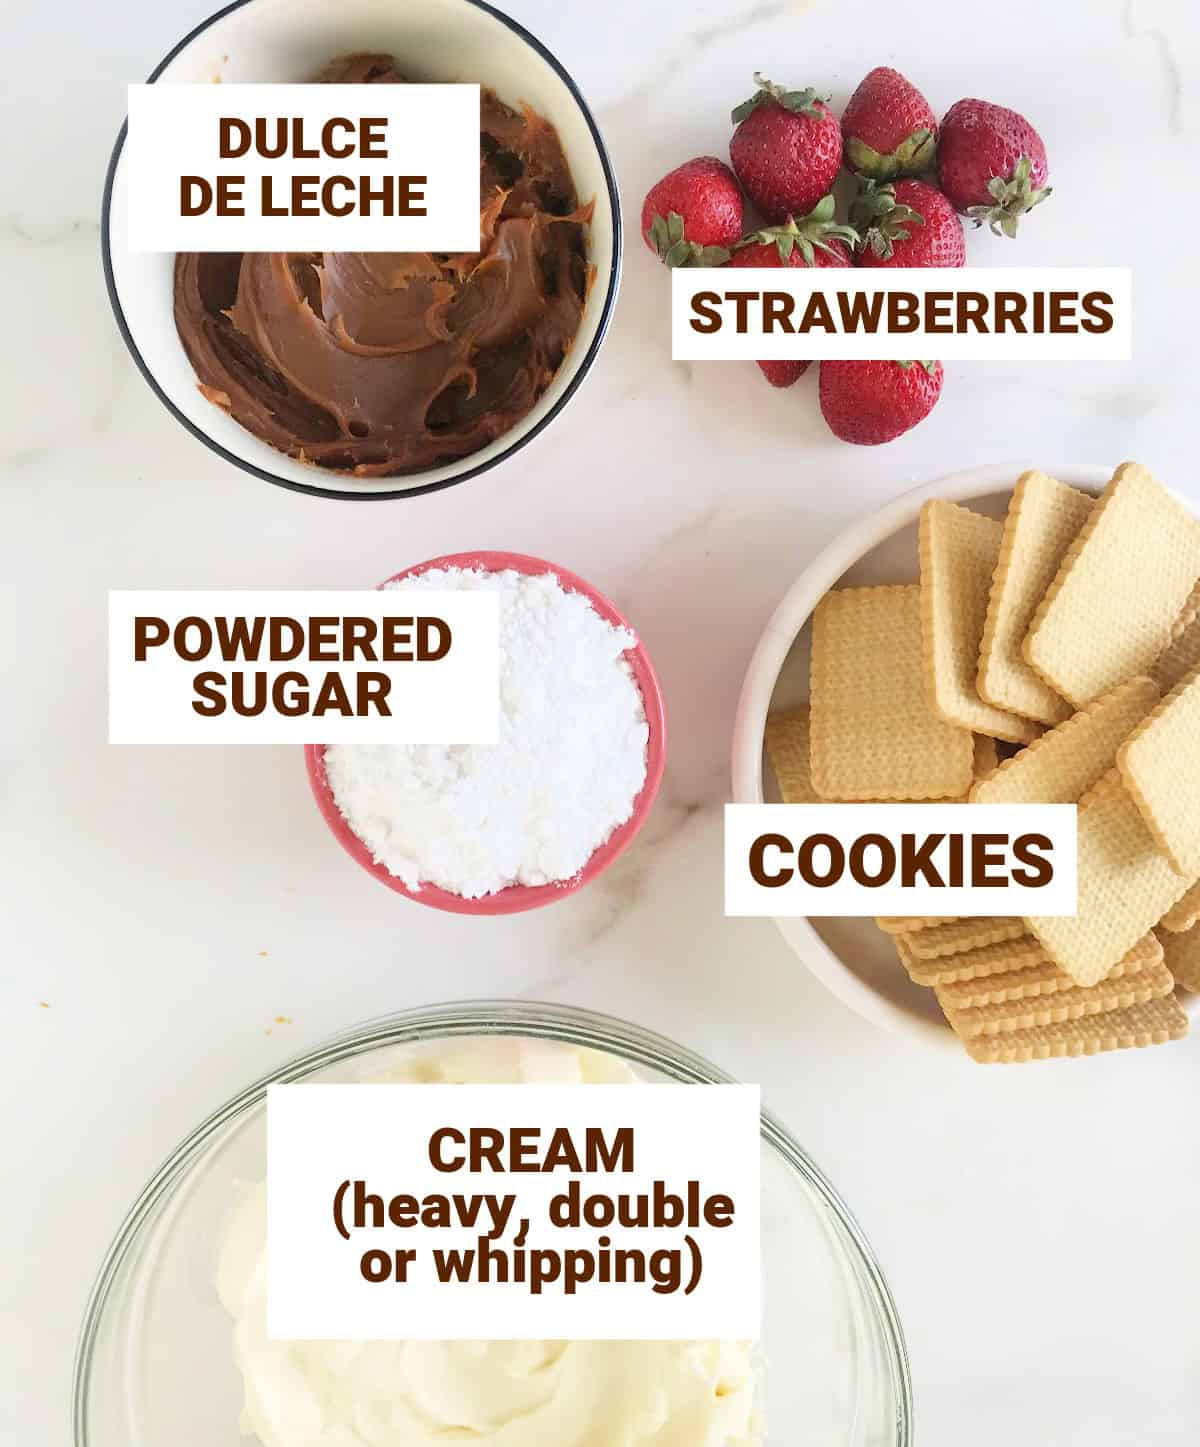 Bowls with strawberries, cookies, cream and other ingredients on white surface